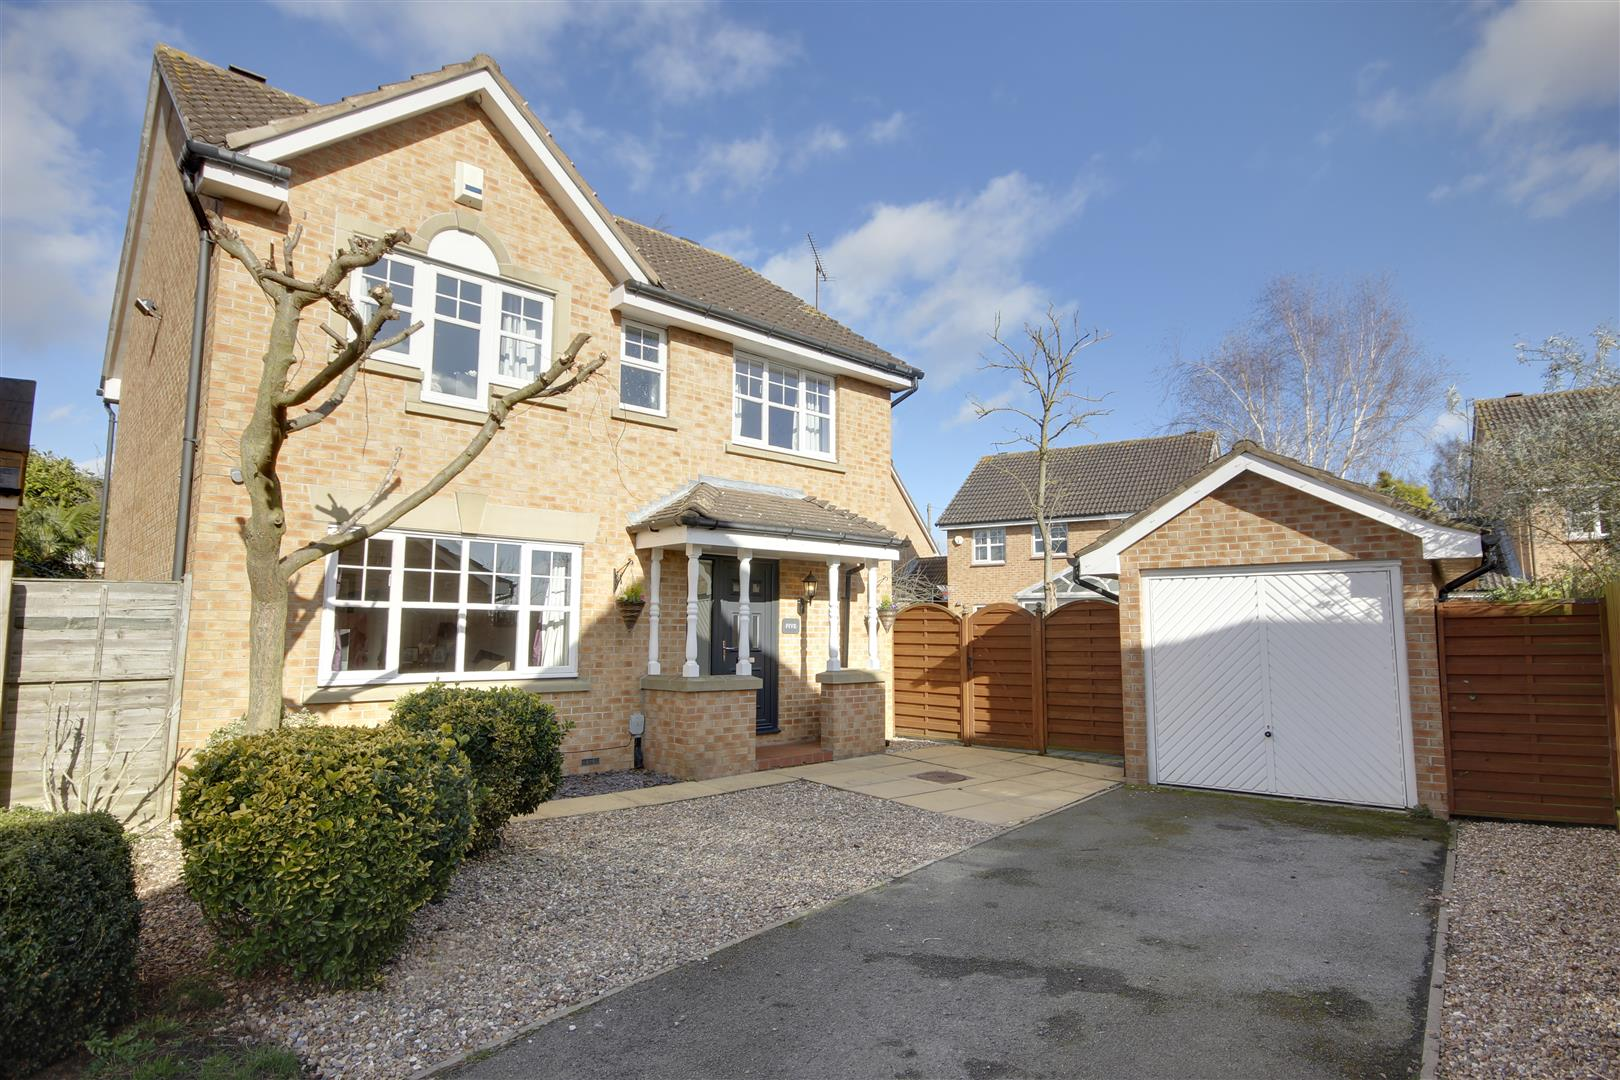 5 Fairfield View, Welton, 5, HU15 1PZ